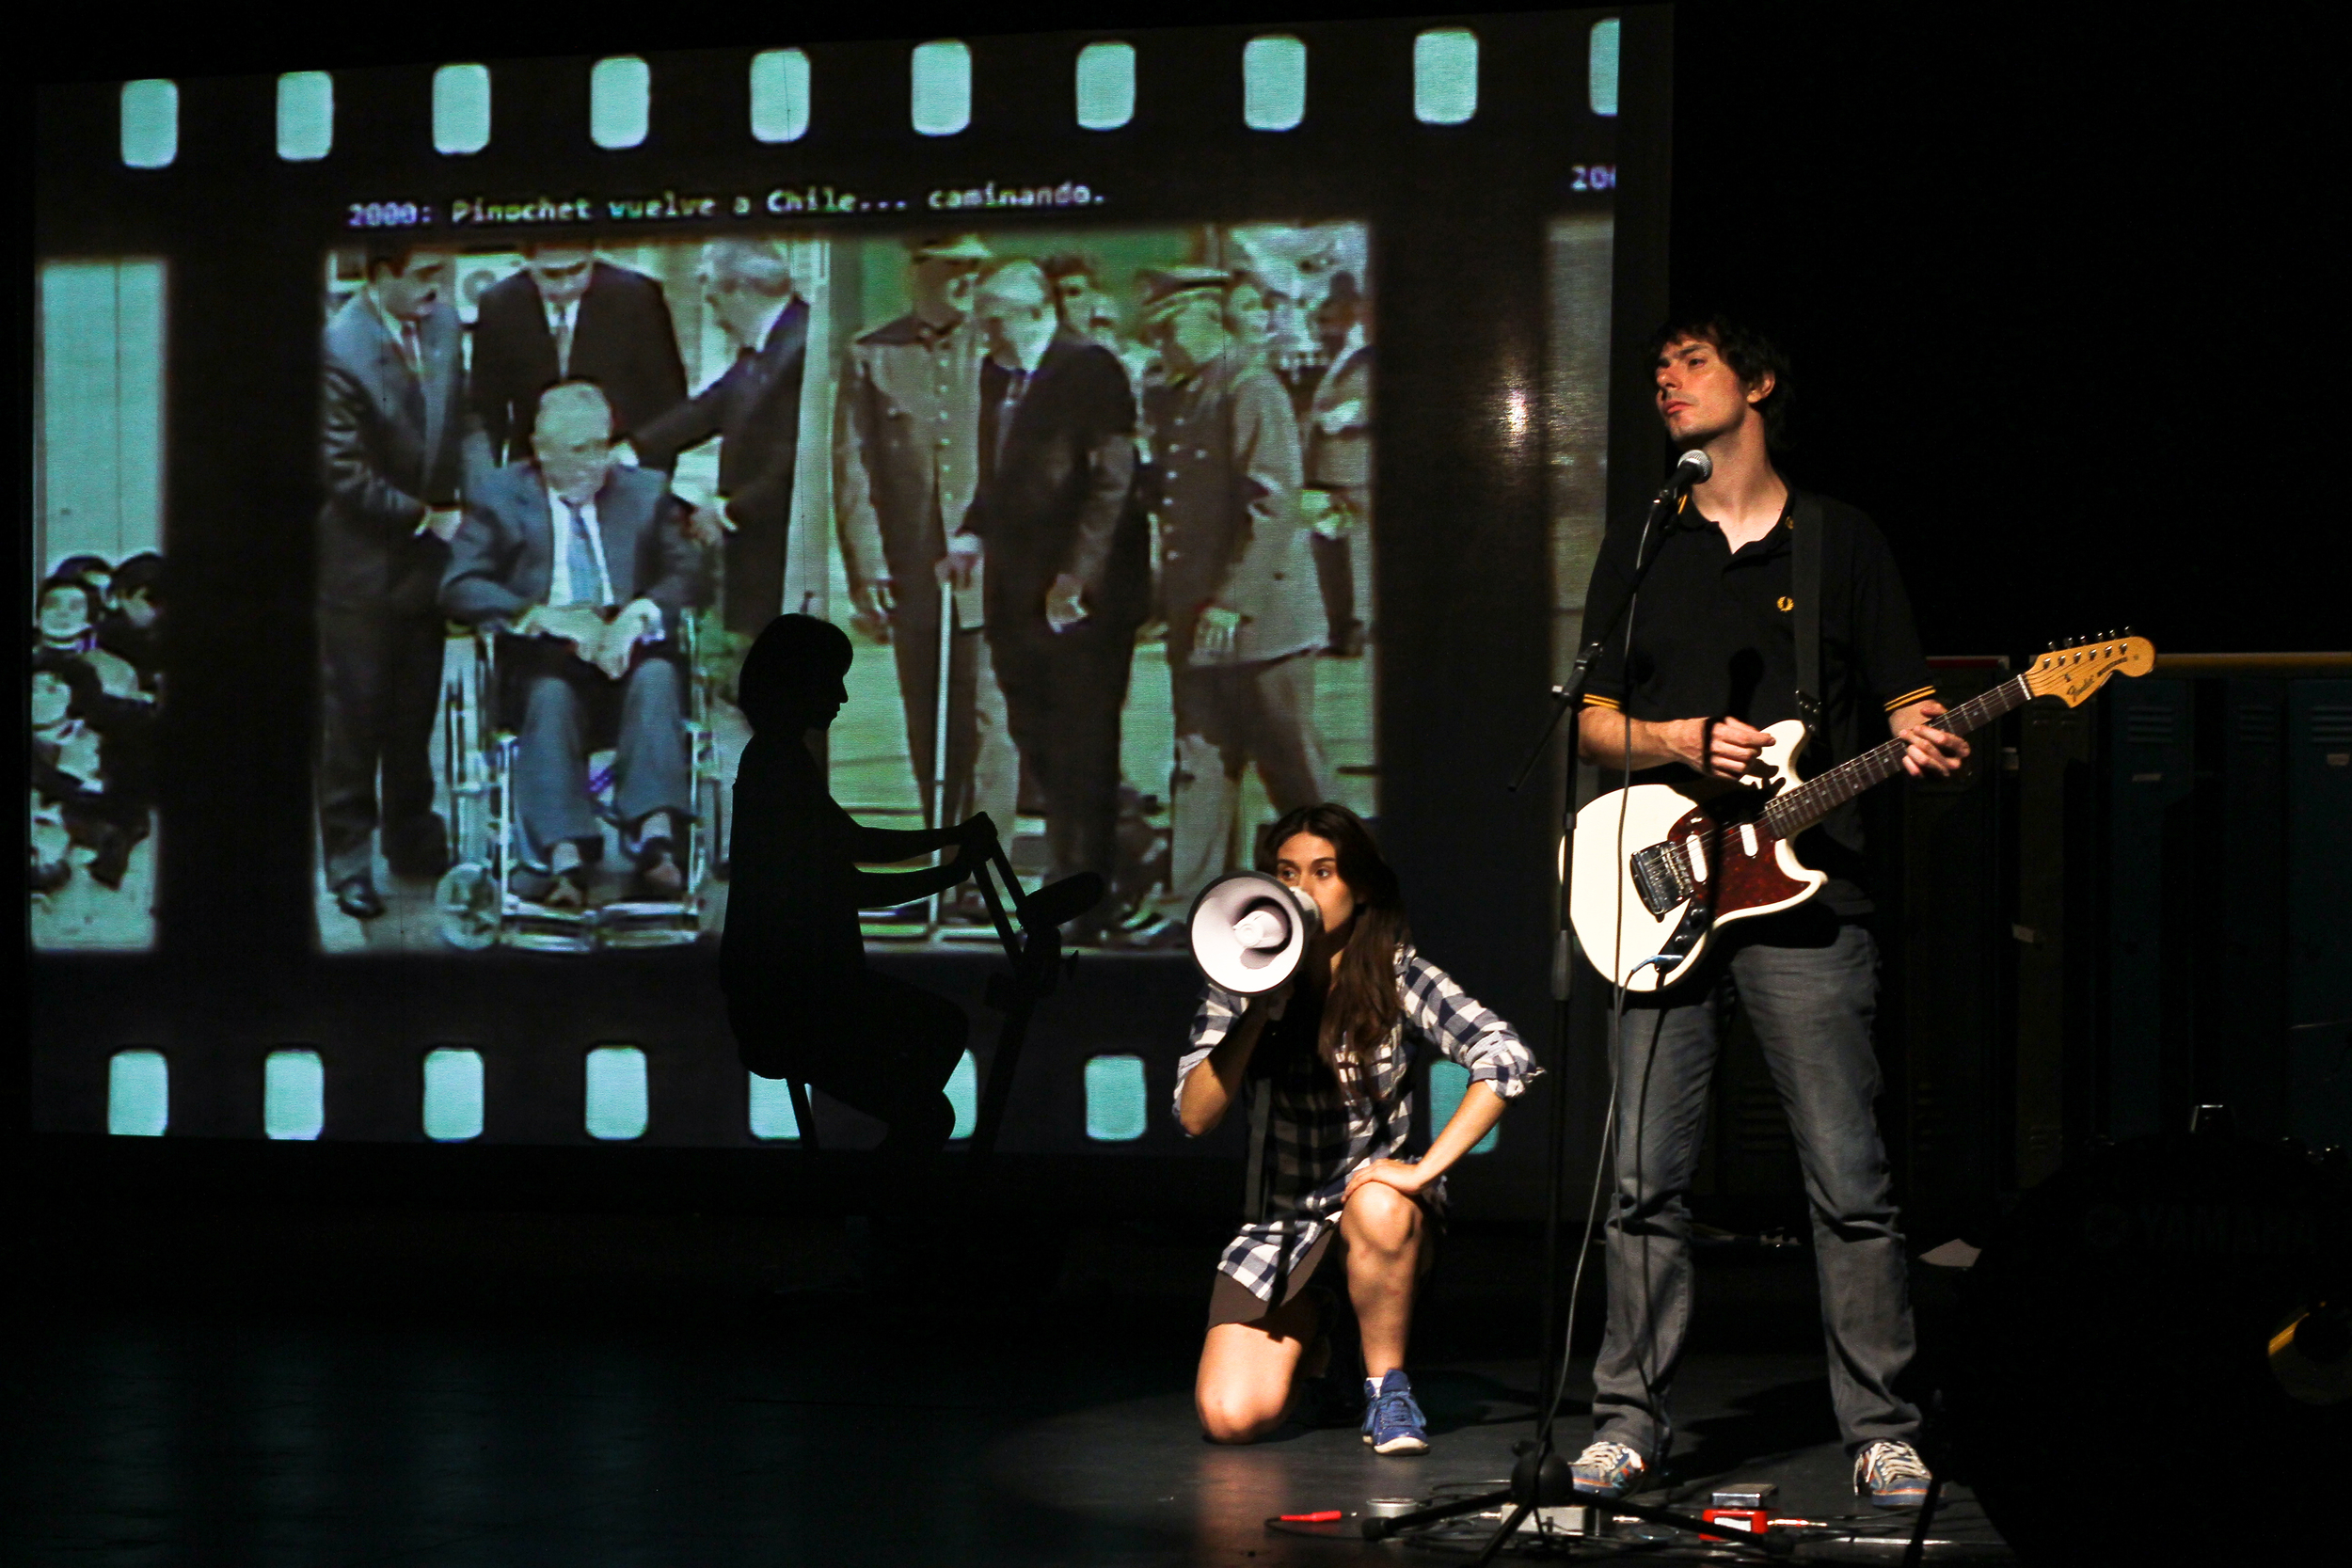 With the youthful energy of a new generation, and bolstered by original live music, 11 Chileans born under Pinochet's dictatorship take to the stage to reconcile a collective history. Somewhere between stunt doubles and historians, they don their parents' clothes and reconstruct their past from photos, letters, and recordings in this raw and honest act of storytelling.     Photo credit: David Alarcón